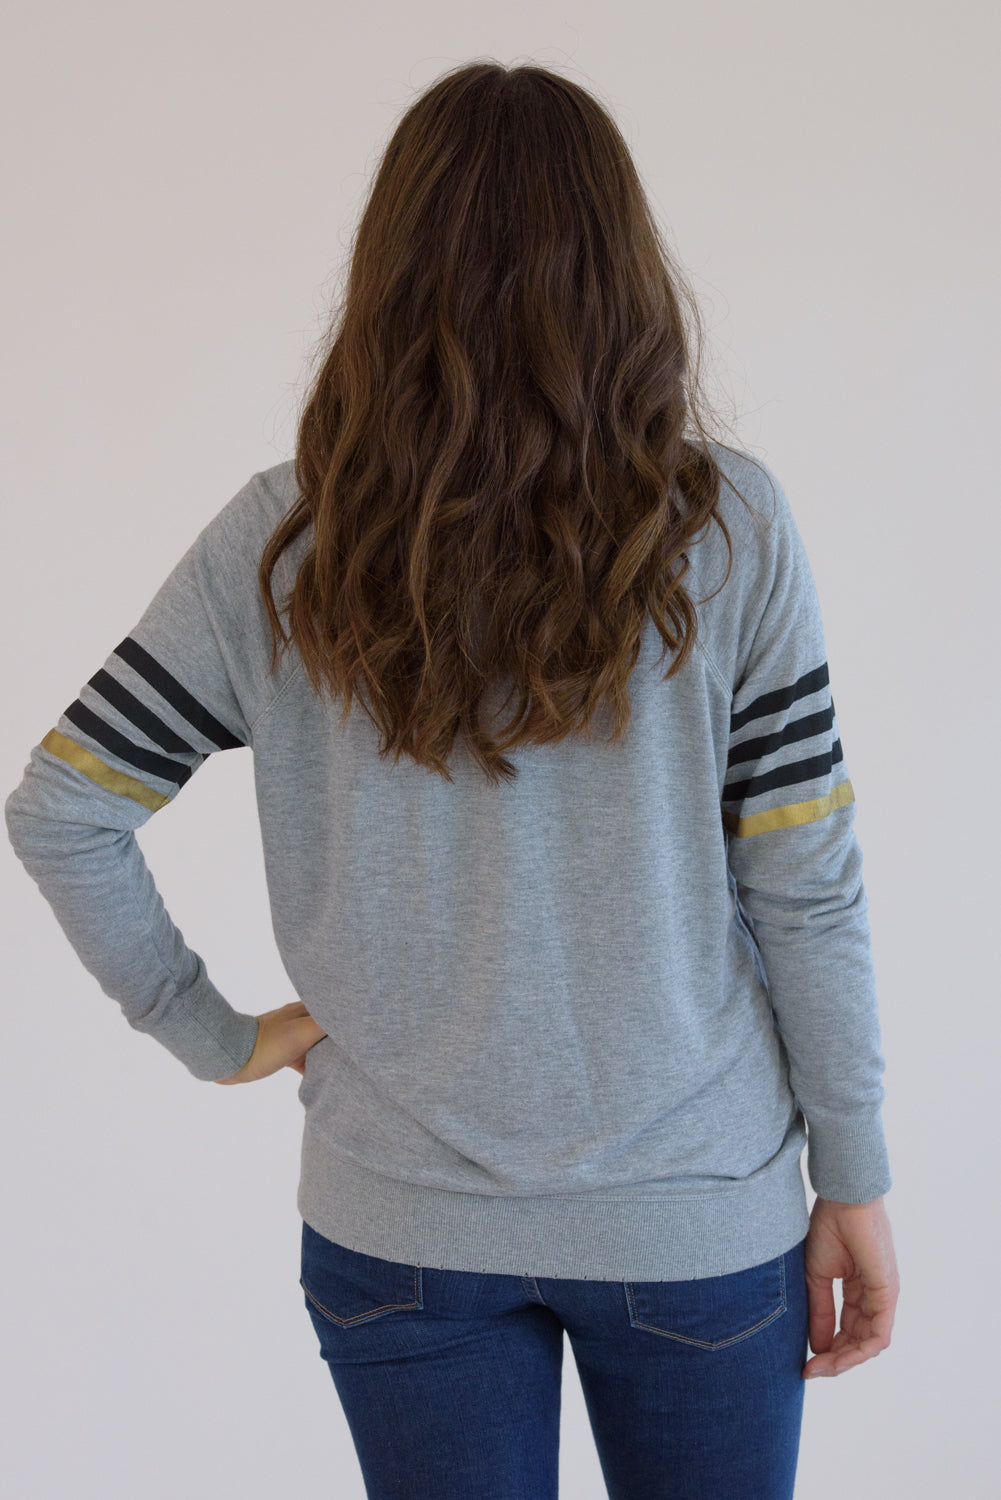 Heather Grey Distressed Black Star and Printed Stripes Sweatshirt